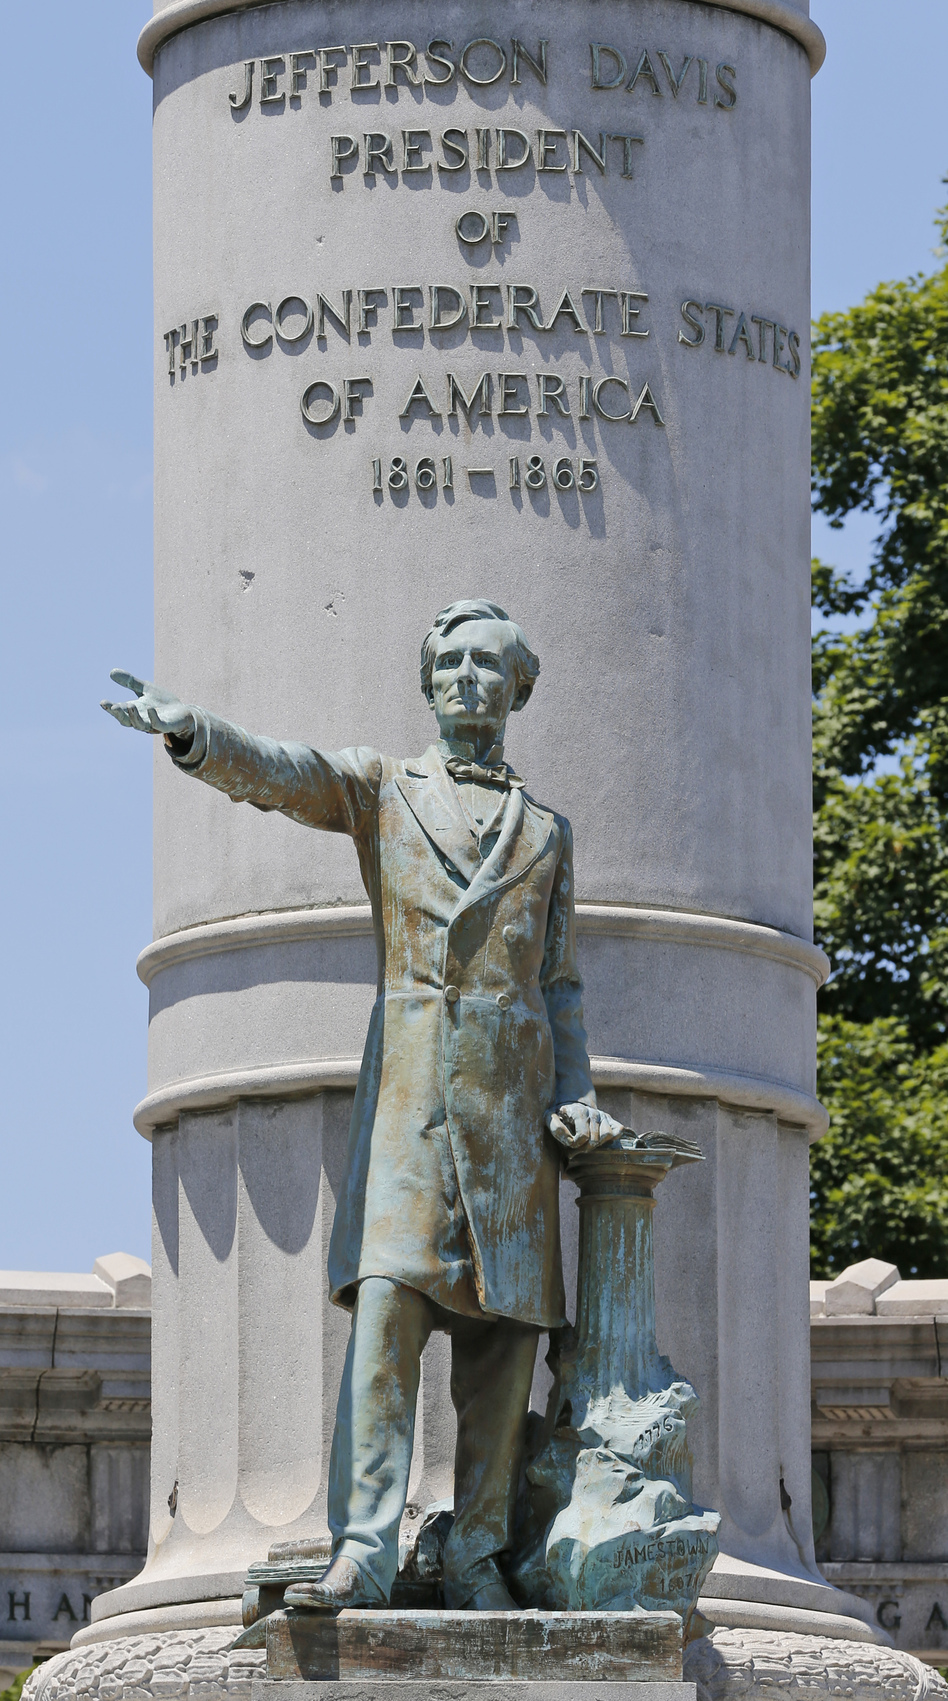 A statue of Jefferson Davis, president of the Confederacy, in Richmond, Va., in 2017. Protesters toppled the statue late Wednesday. (Steve Helber/AP)